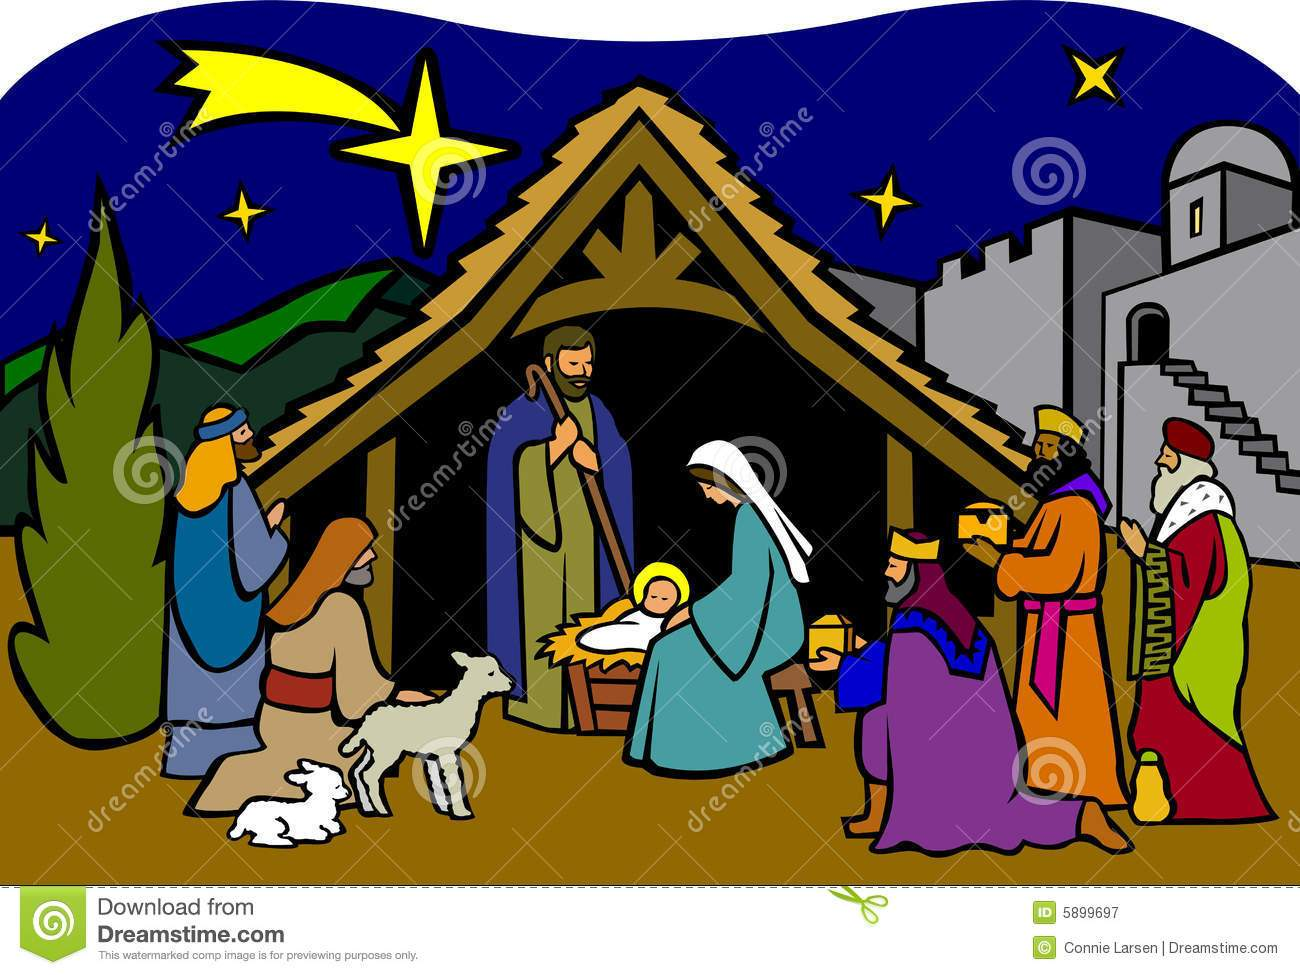 Christmas nativity clipart free 4 » Clipart Portal.